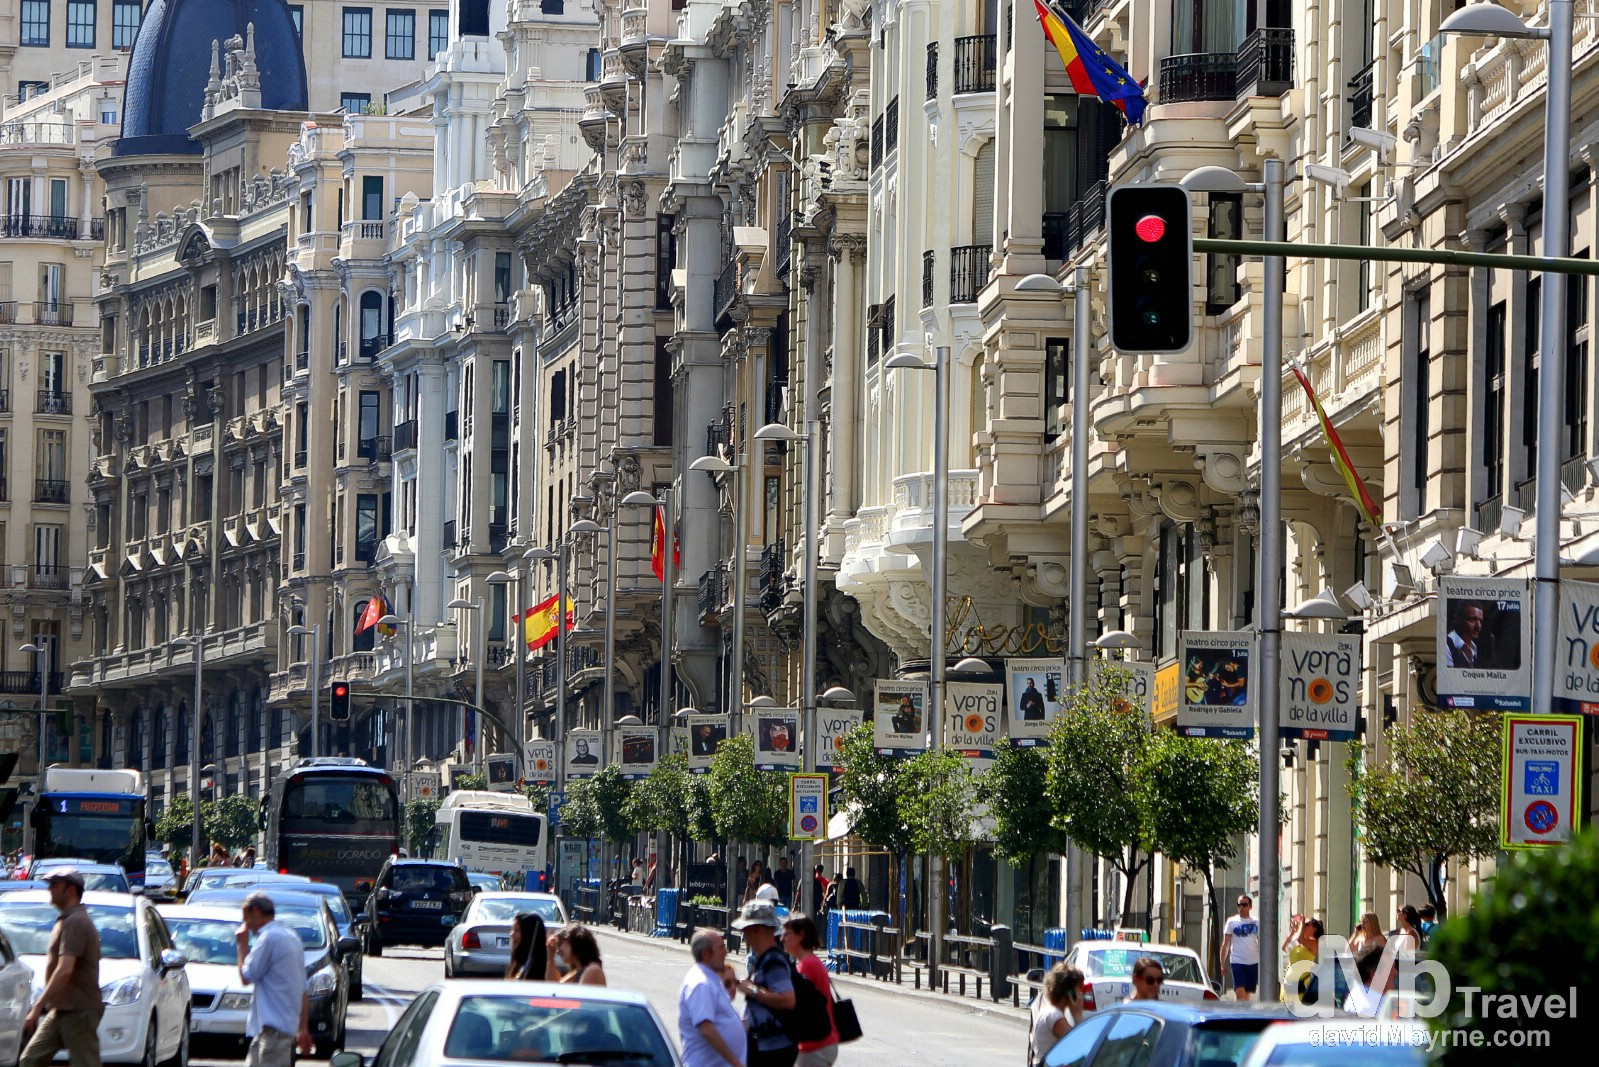 Buildings lining Gran Via in Madrid, Spain. June 14th, 2014.